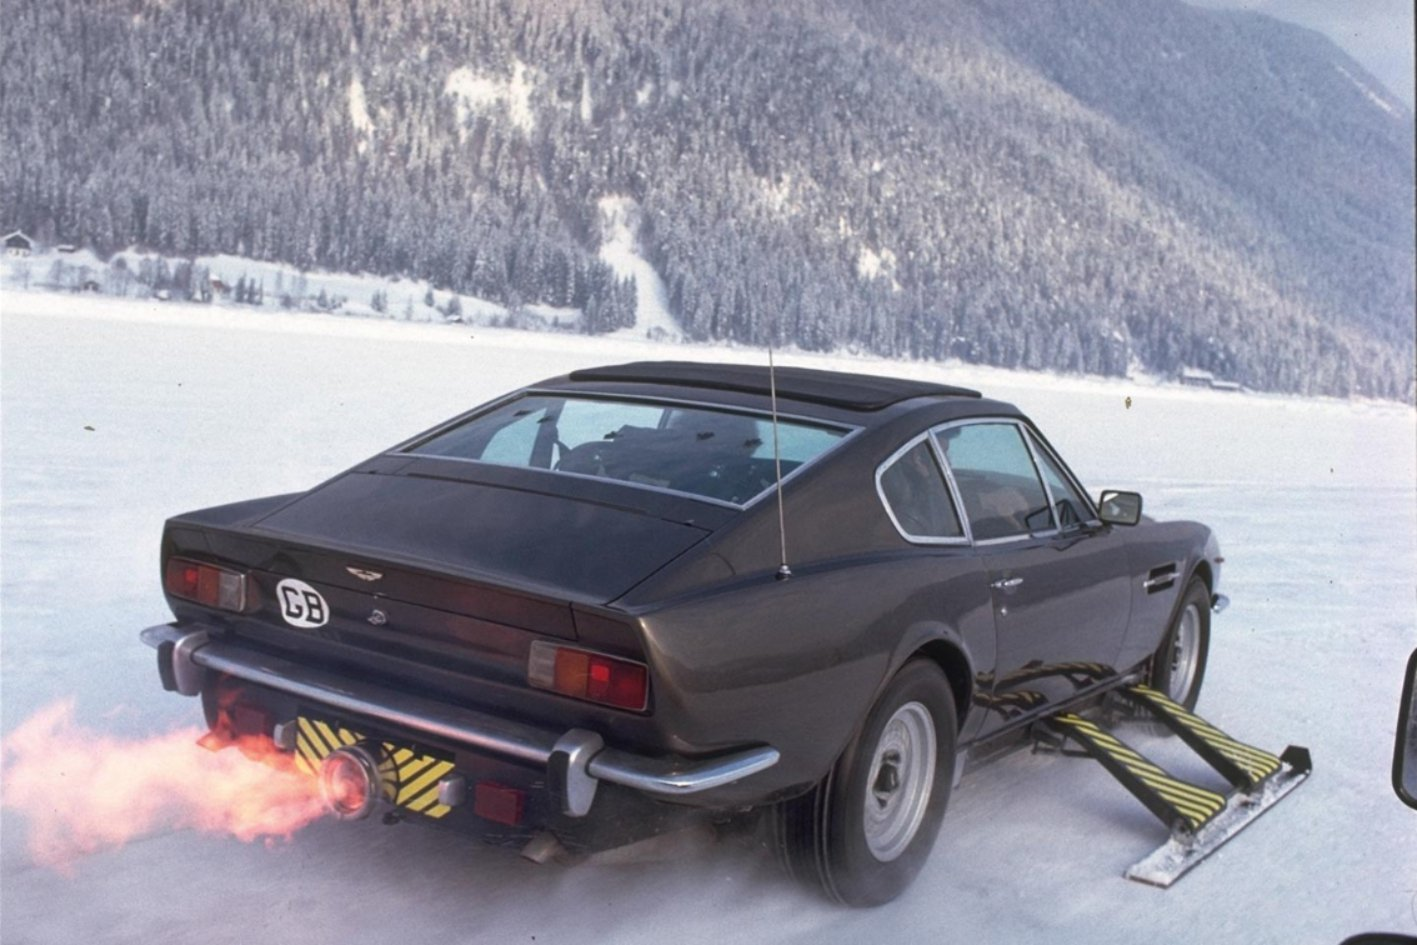 tld7 car3 20 Reasons Why Timothy Dalton Was Probably The Best James Bond Ever